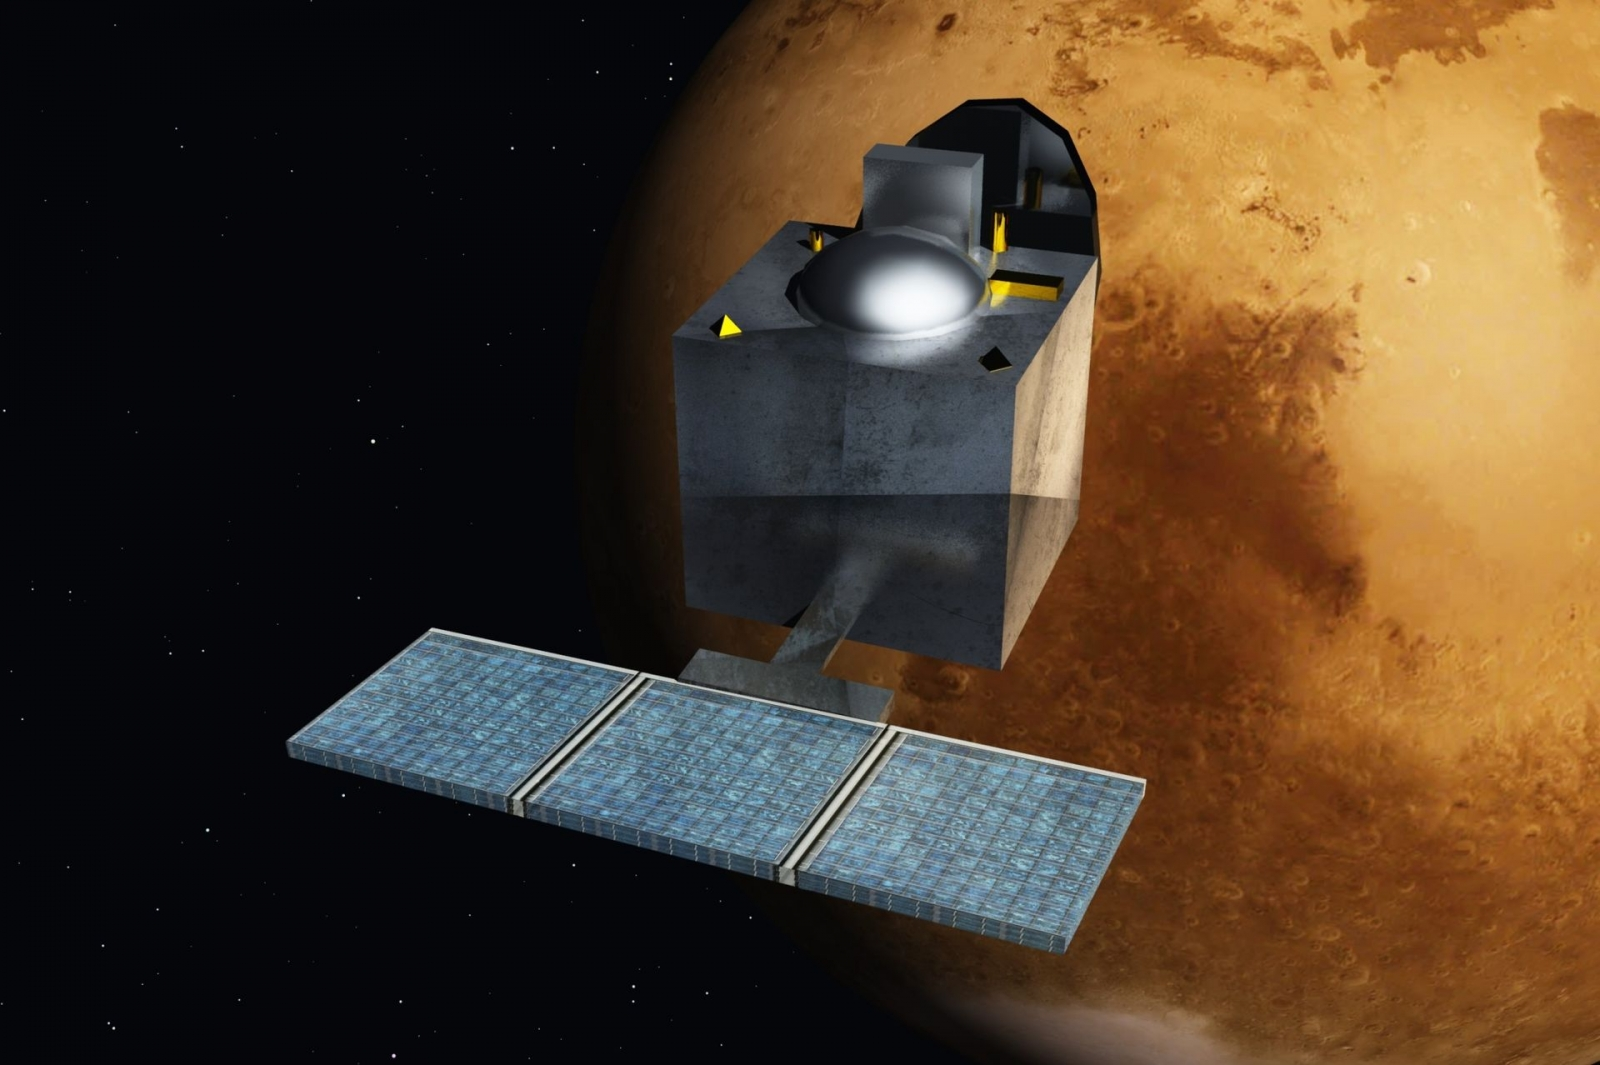 India's Mars Craft MOM All Set For Orbit Insertion - Isro